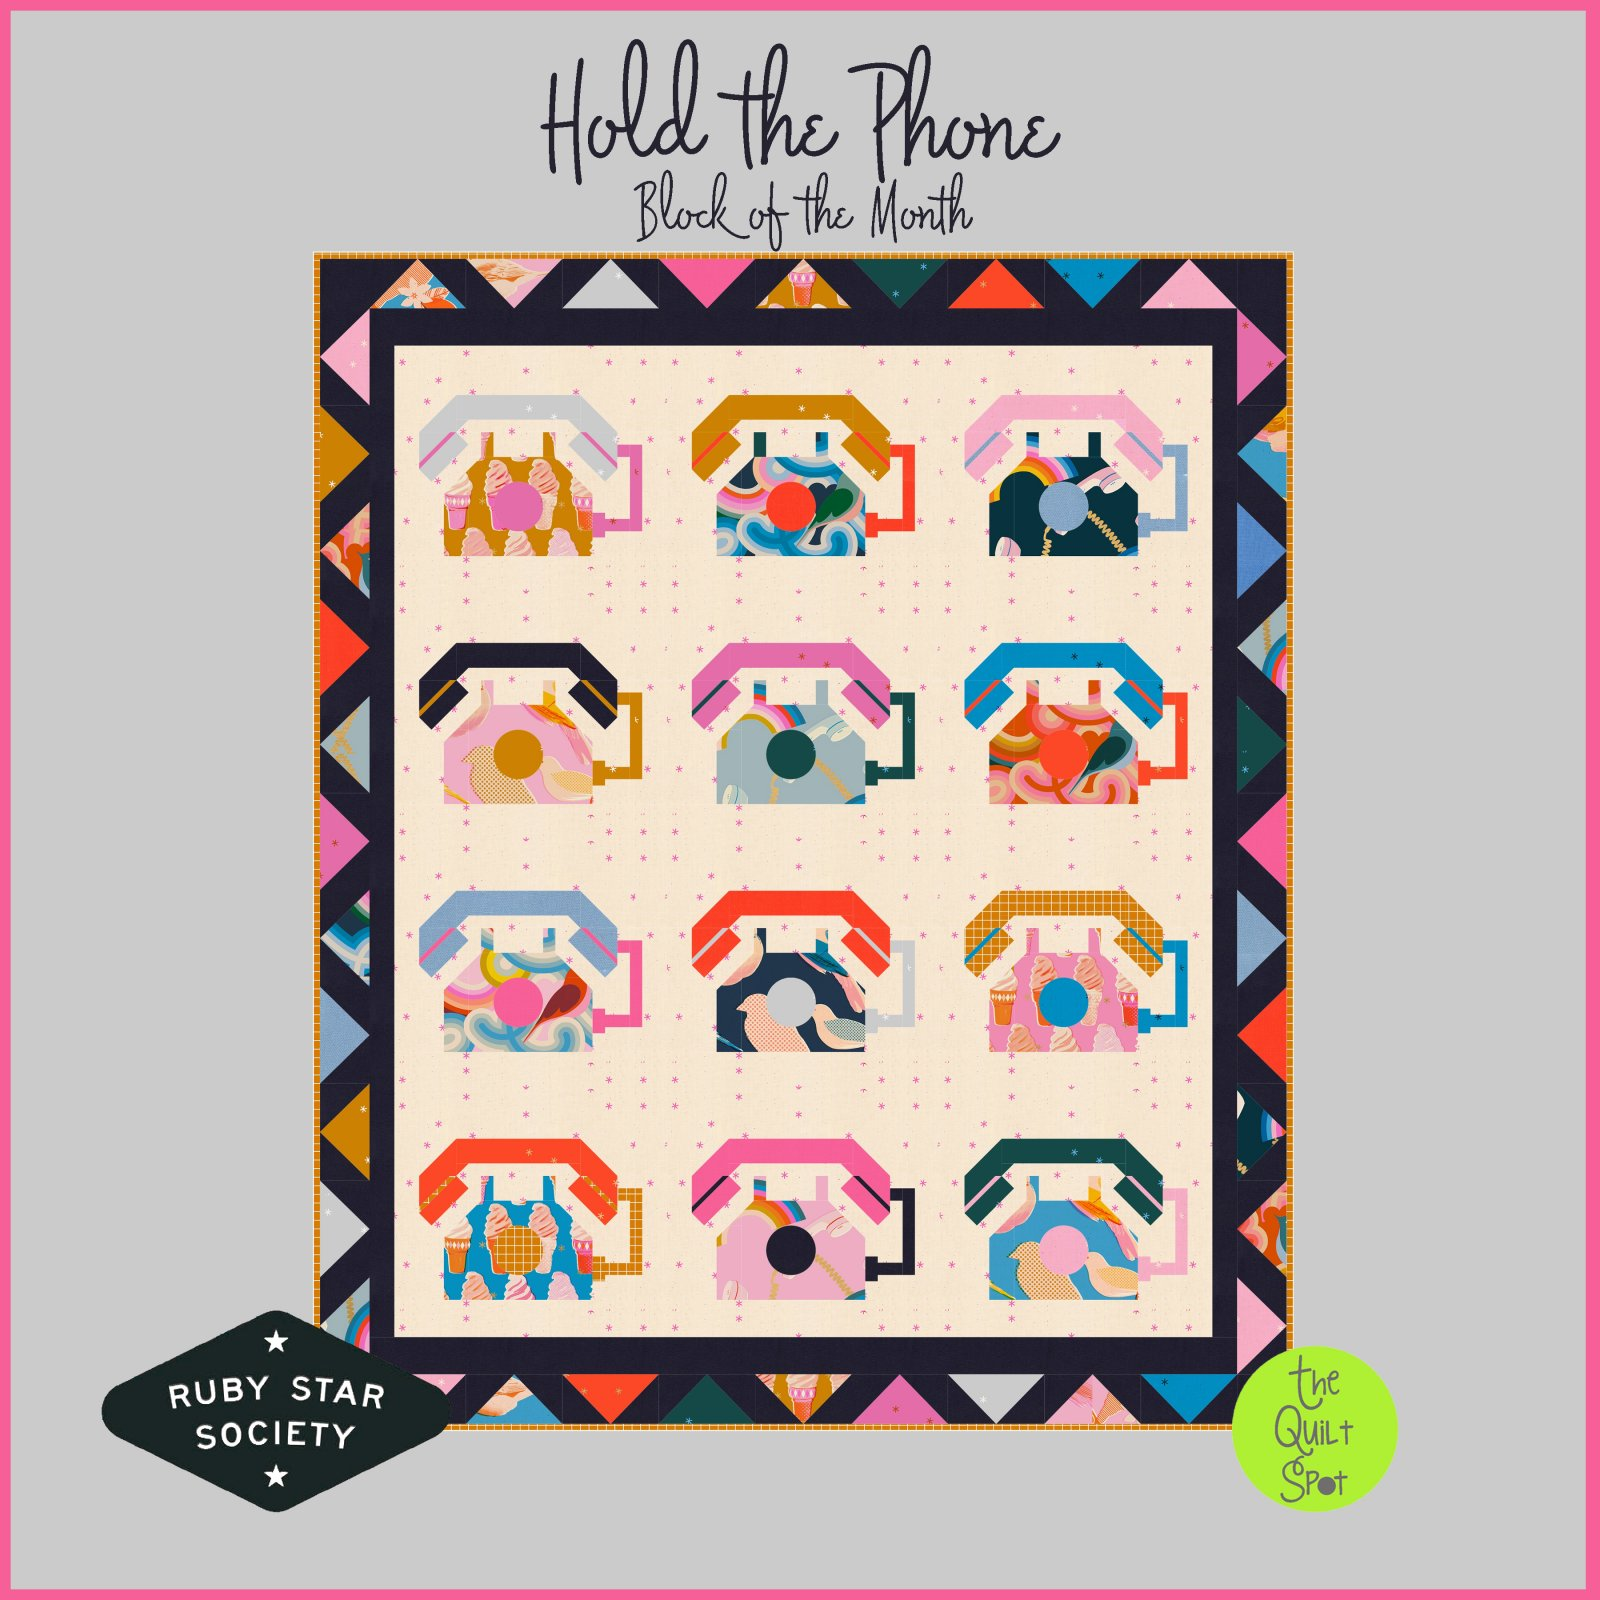 Hold the Phone Block of the Month - Ruby Star Society Block of the Month